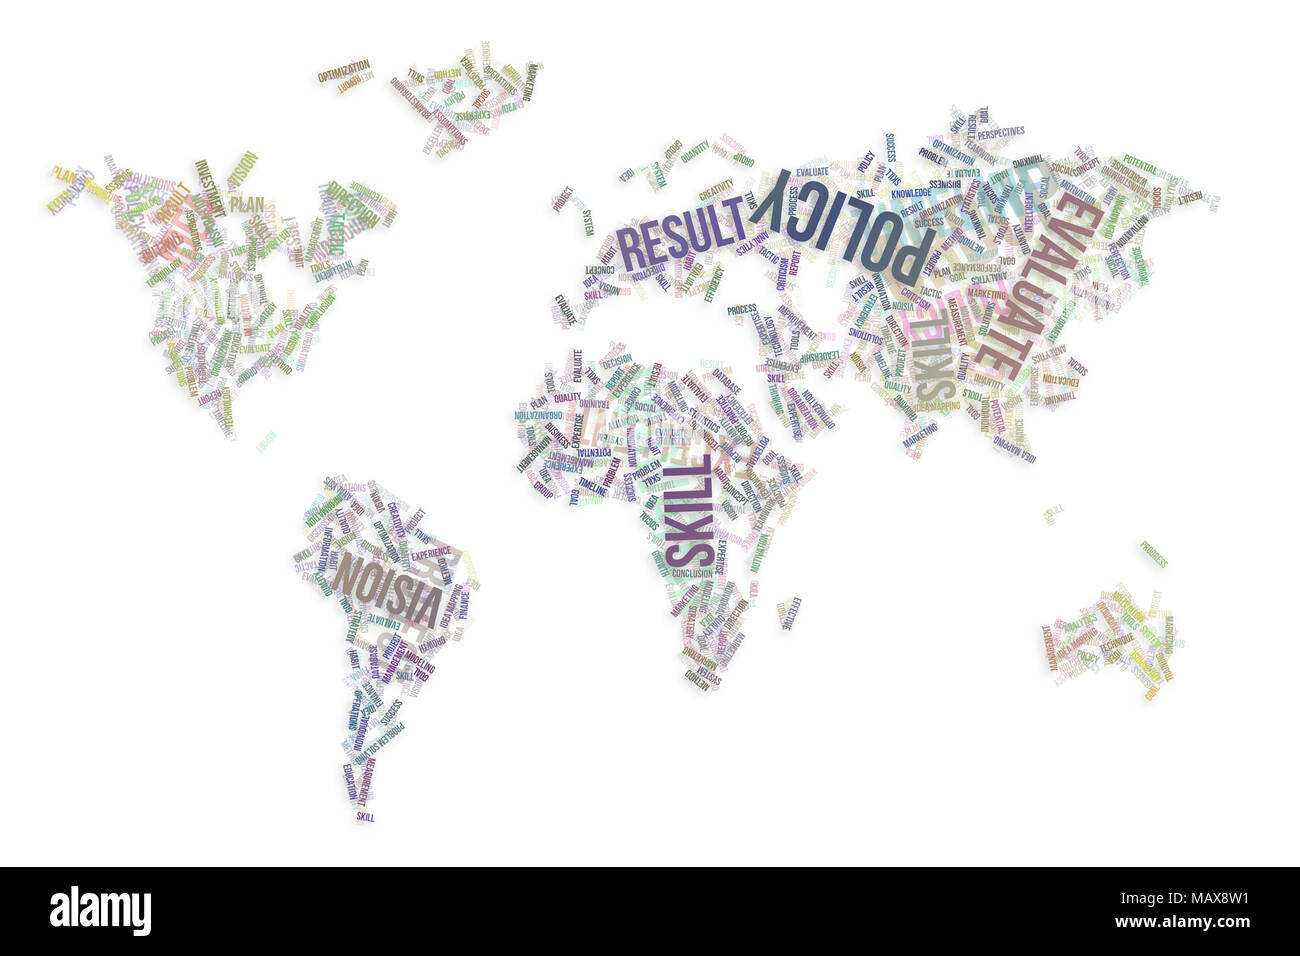 Business word cloud colorful abstract on world map for web page business word cloud colorful abstract on world map for web page graphic design catalog textile or texture printing background gumiabroncs Choice Image